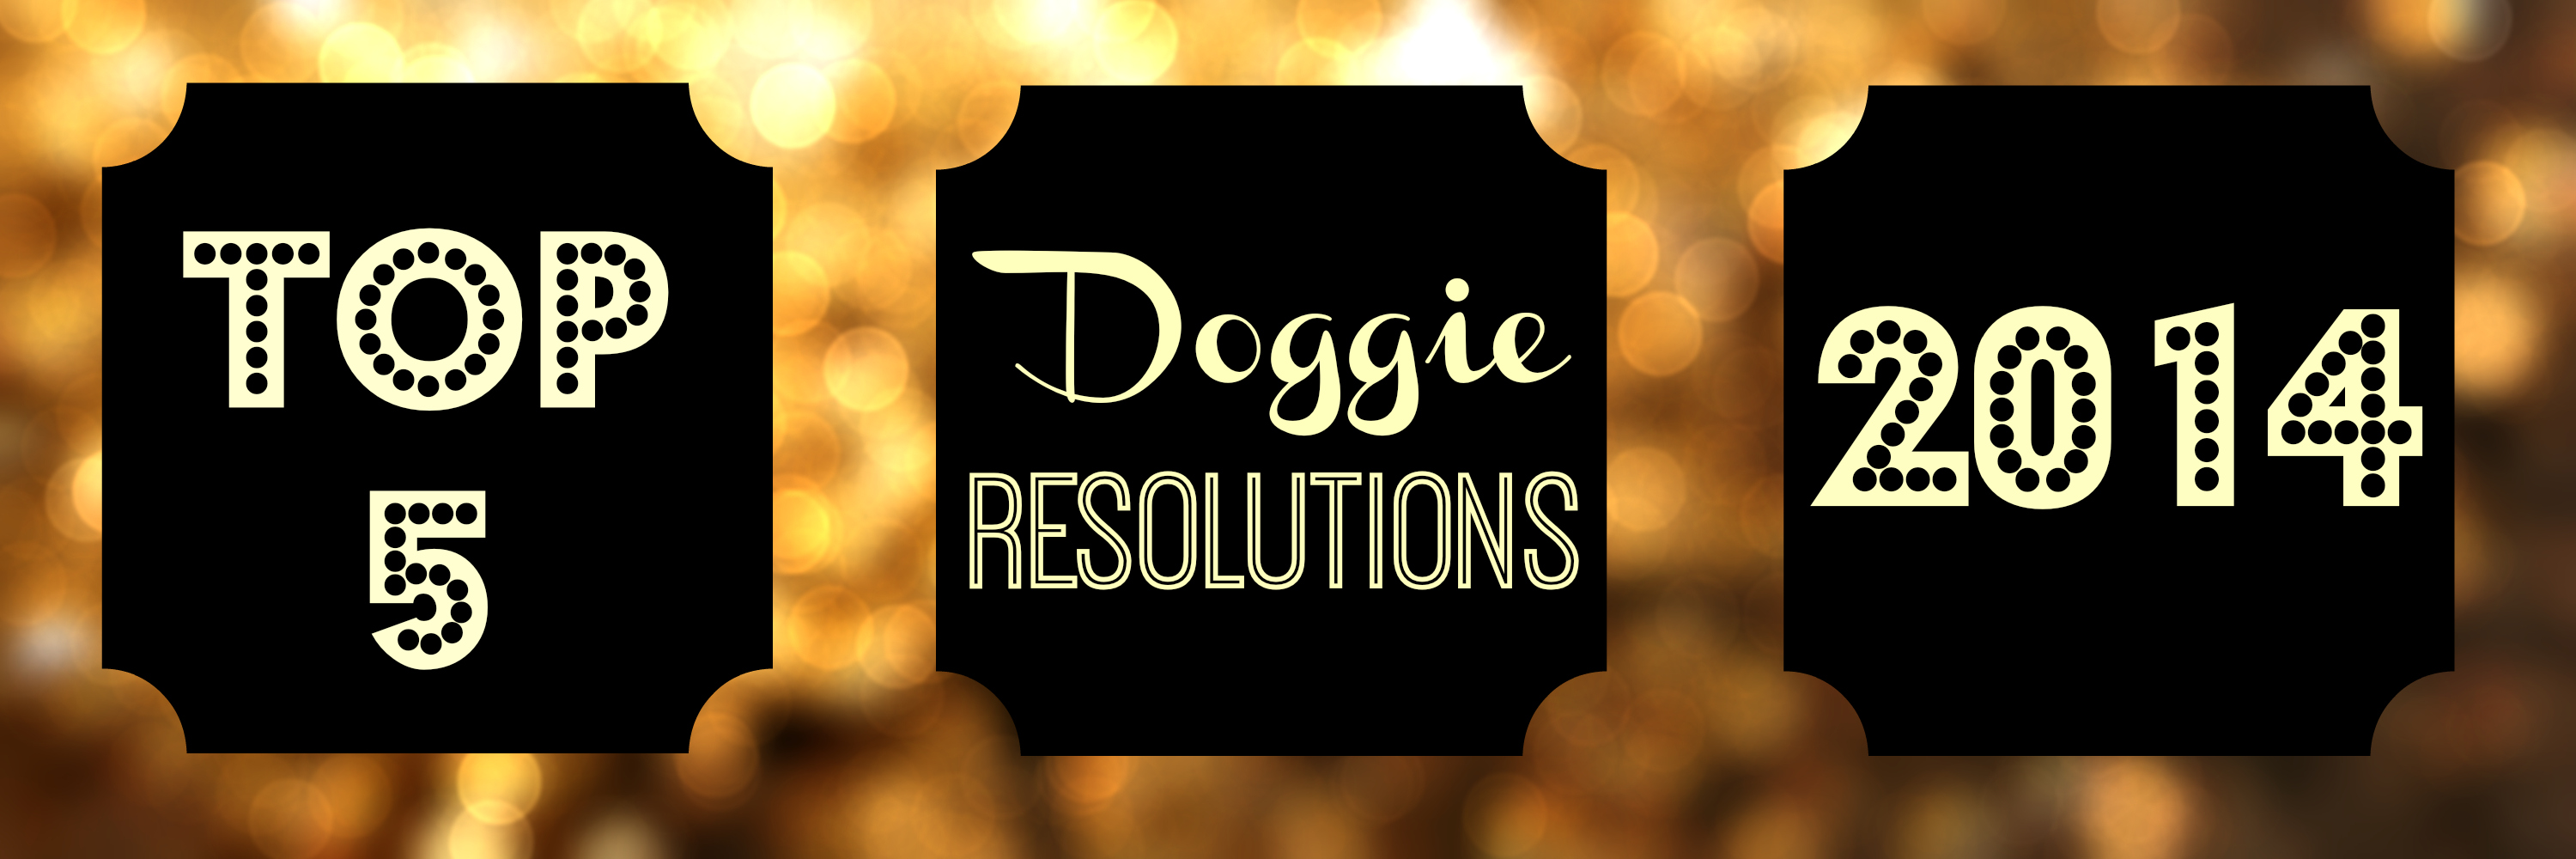 Top 5 New Years Resolutions For Your Dog (And You!)